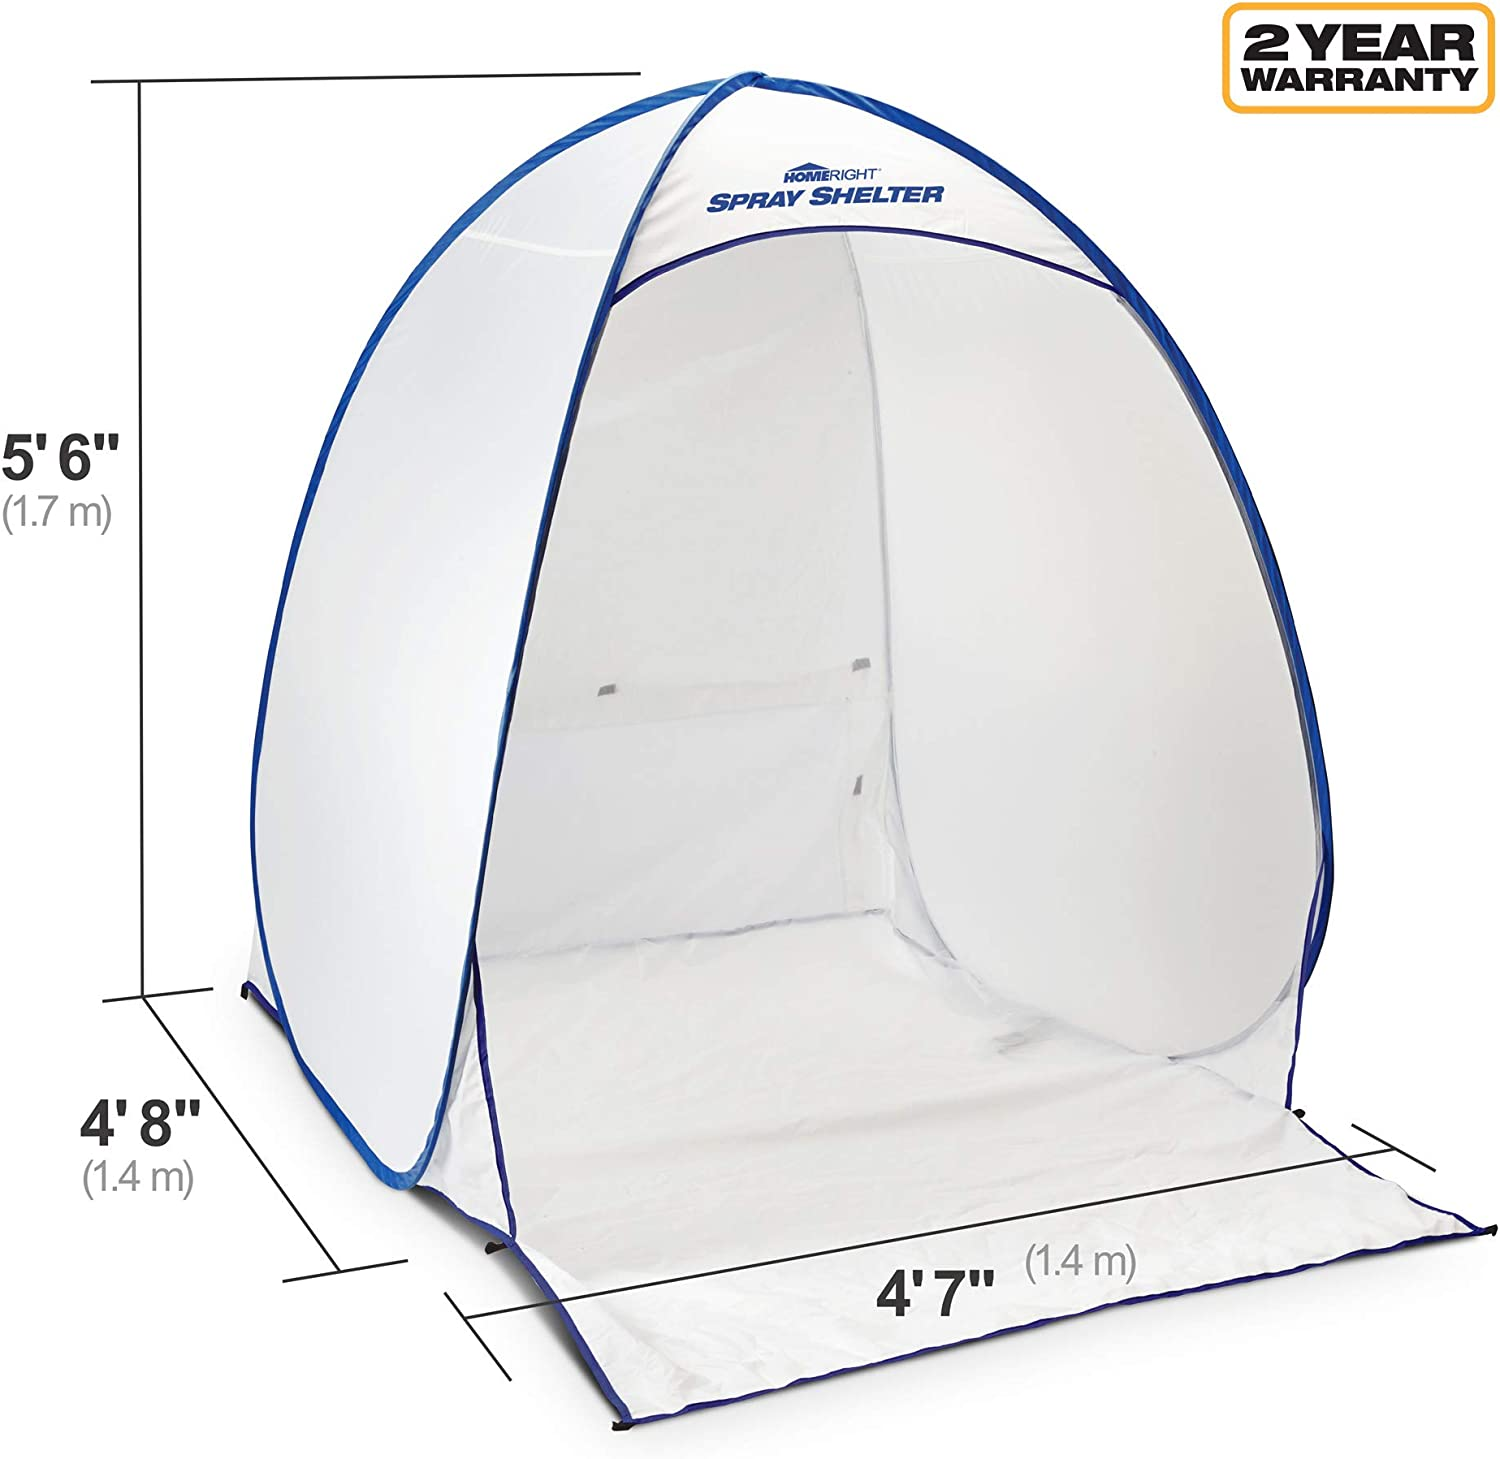 Homeright C900139.M Medium Spray Shelter Paint Booth